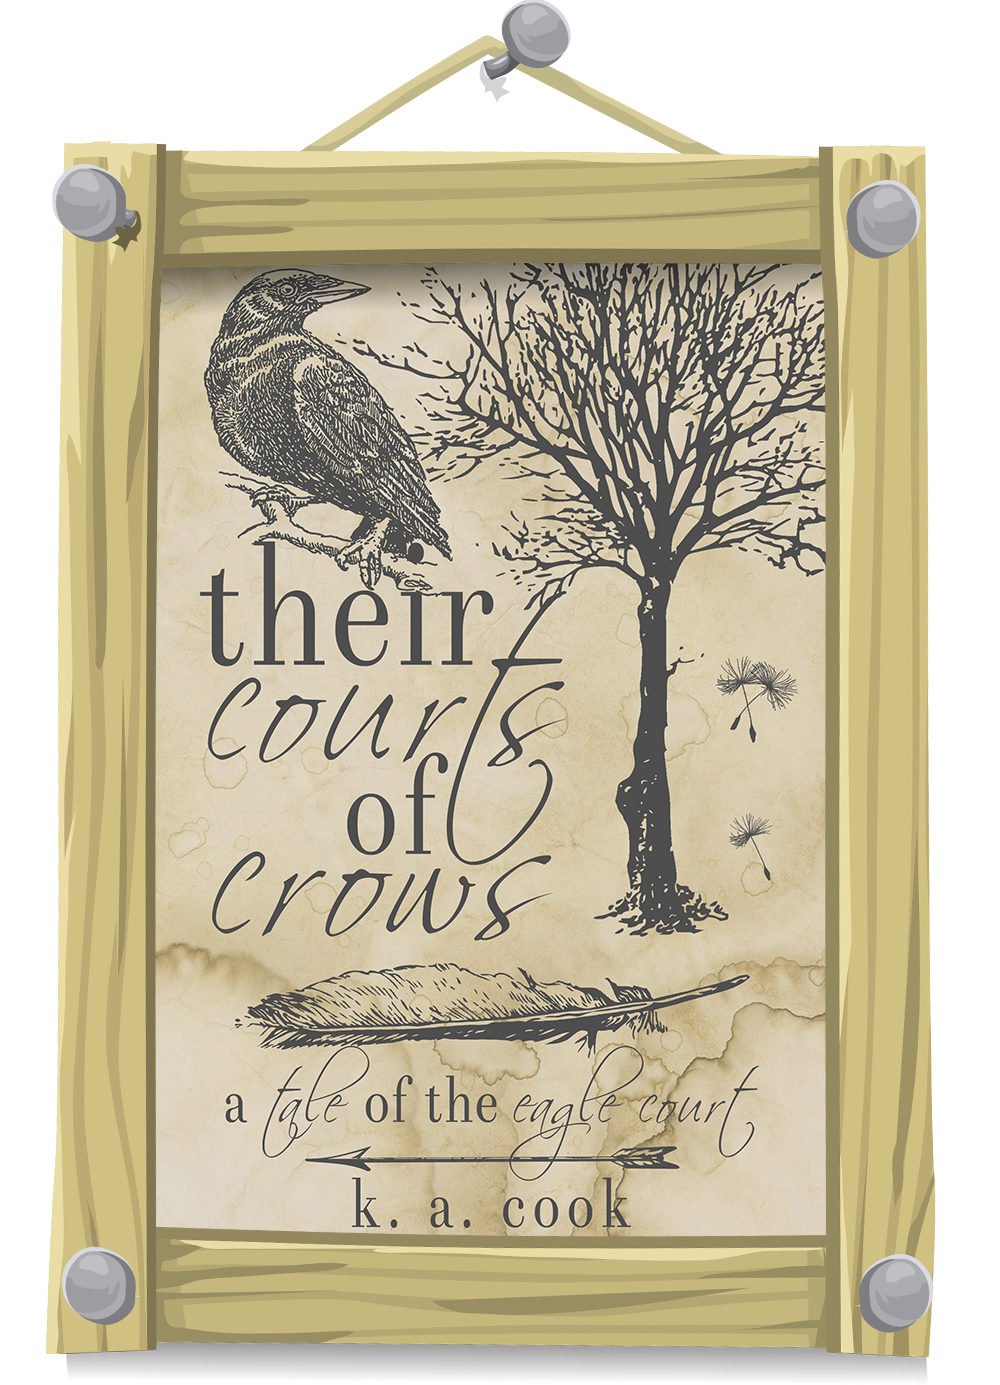 Cover image: Their Courts of Crows by K. A. Cook.